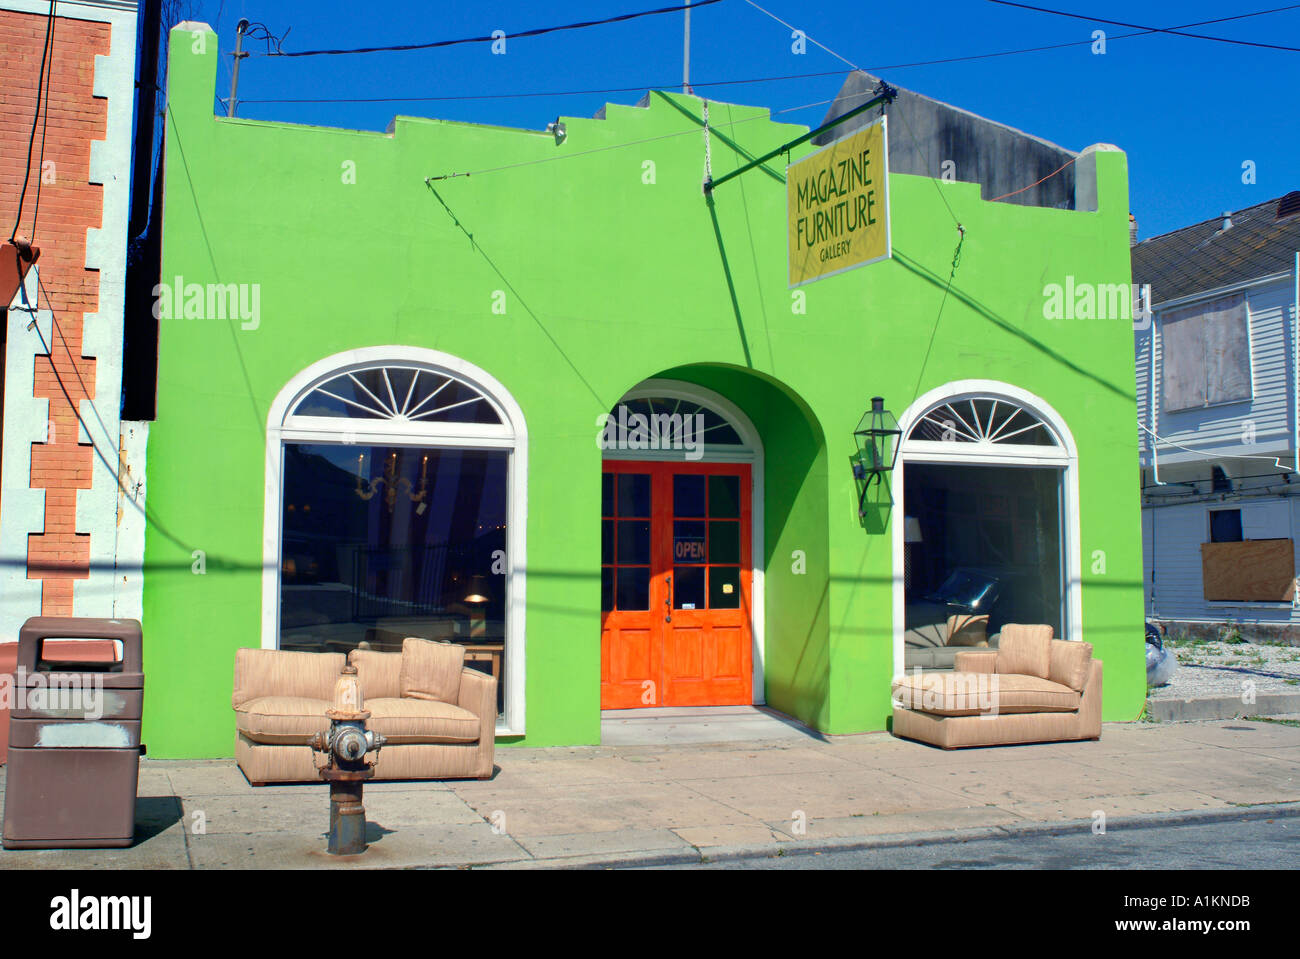 Secondhand Store In New Orleans Louisiana USA   Stock Image